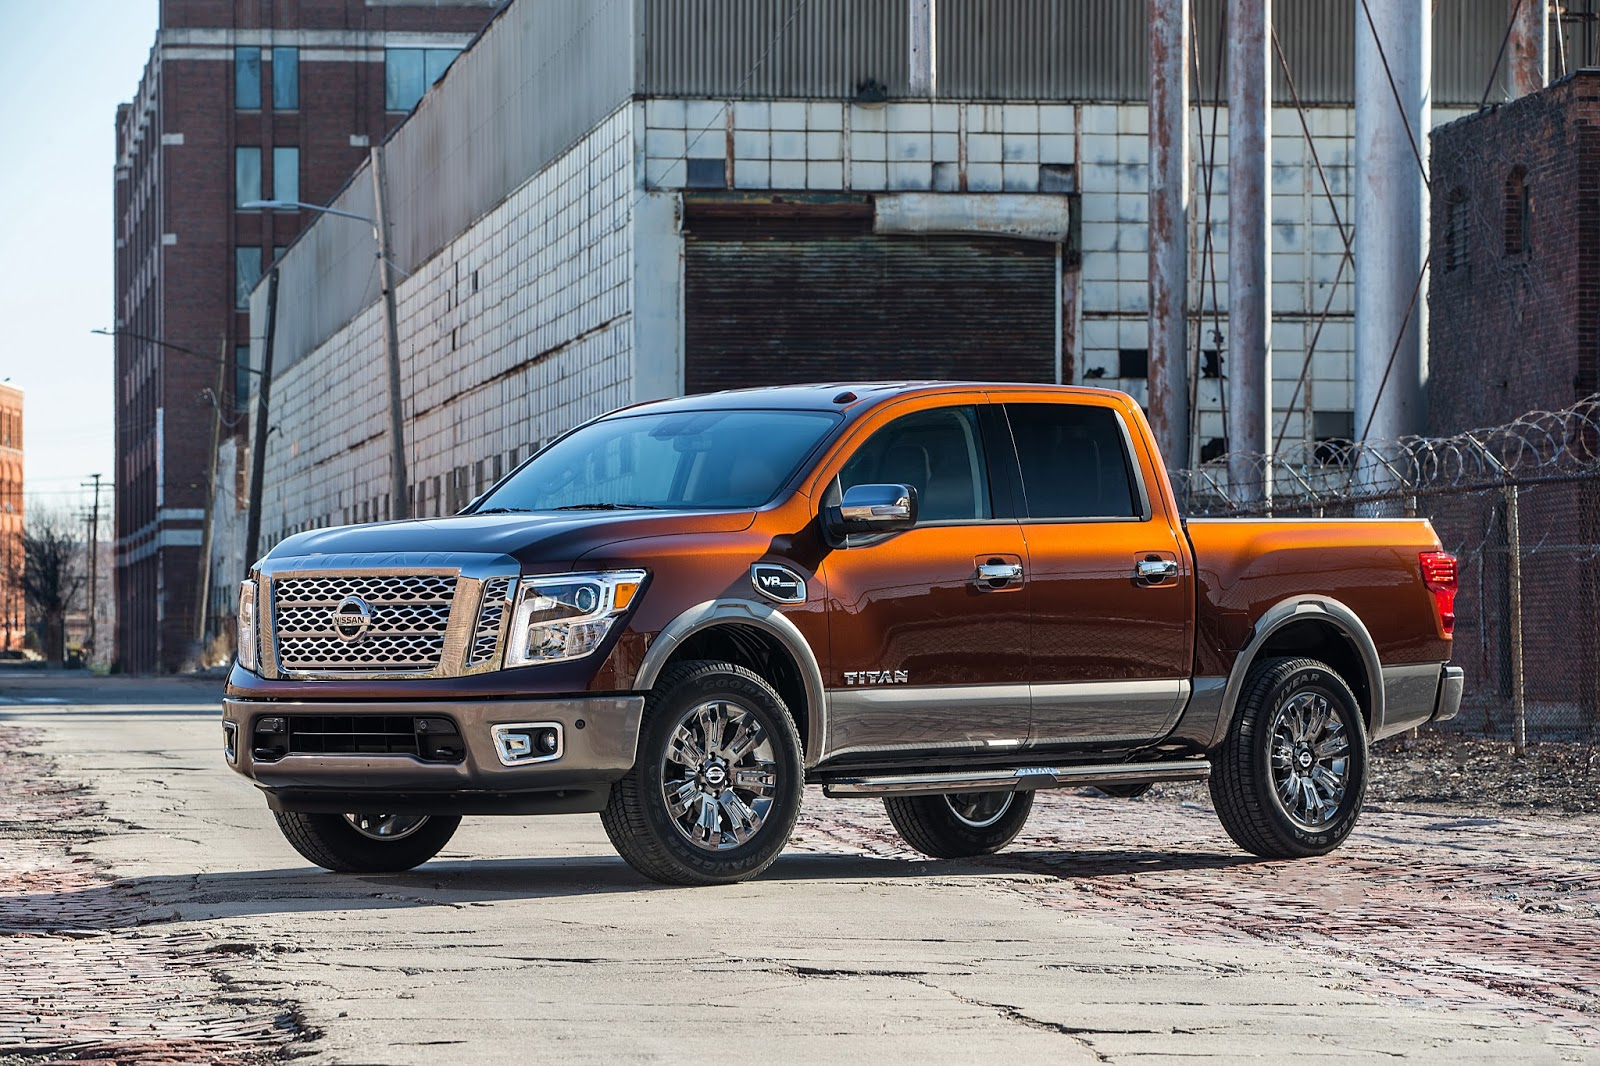 Towing and hauling informed and in control like the titan xd the titan half ton offers cutting edge available towing utility features and driving aids